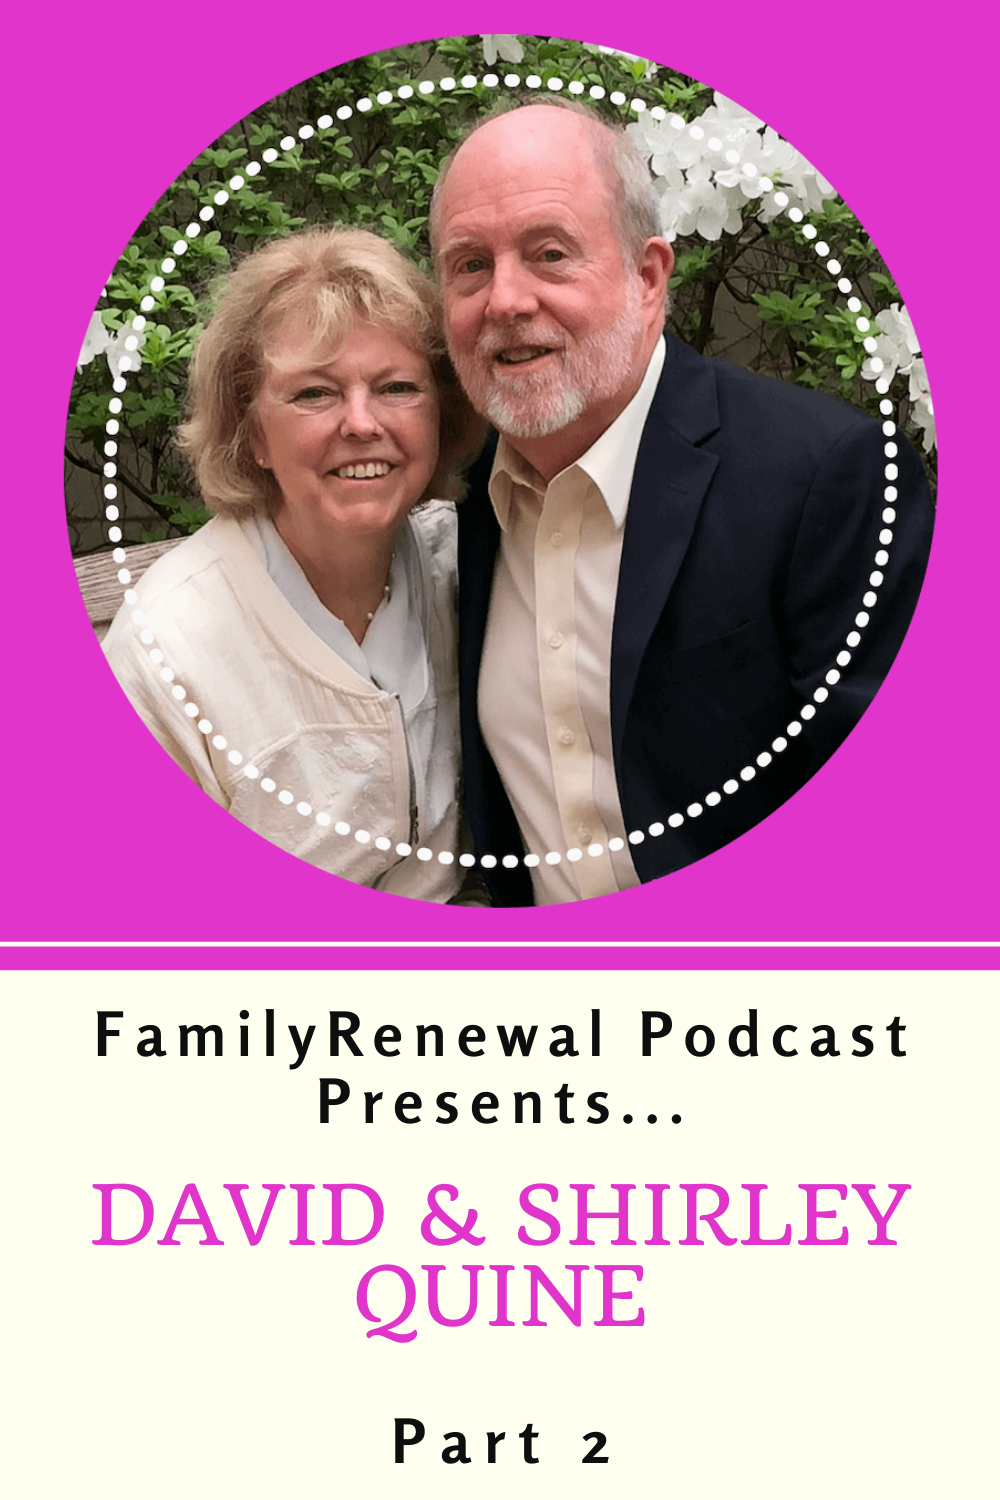 In this episode, Israel Wayne discusses with David & Shirley Quine how to pass on a Biblical worldview to your children through the context of homeschooling.